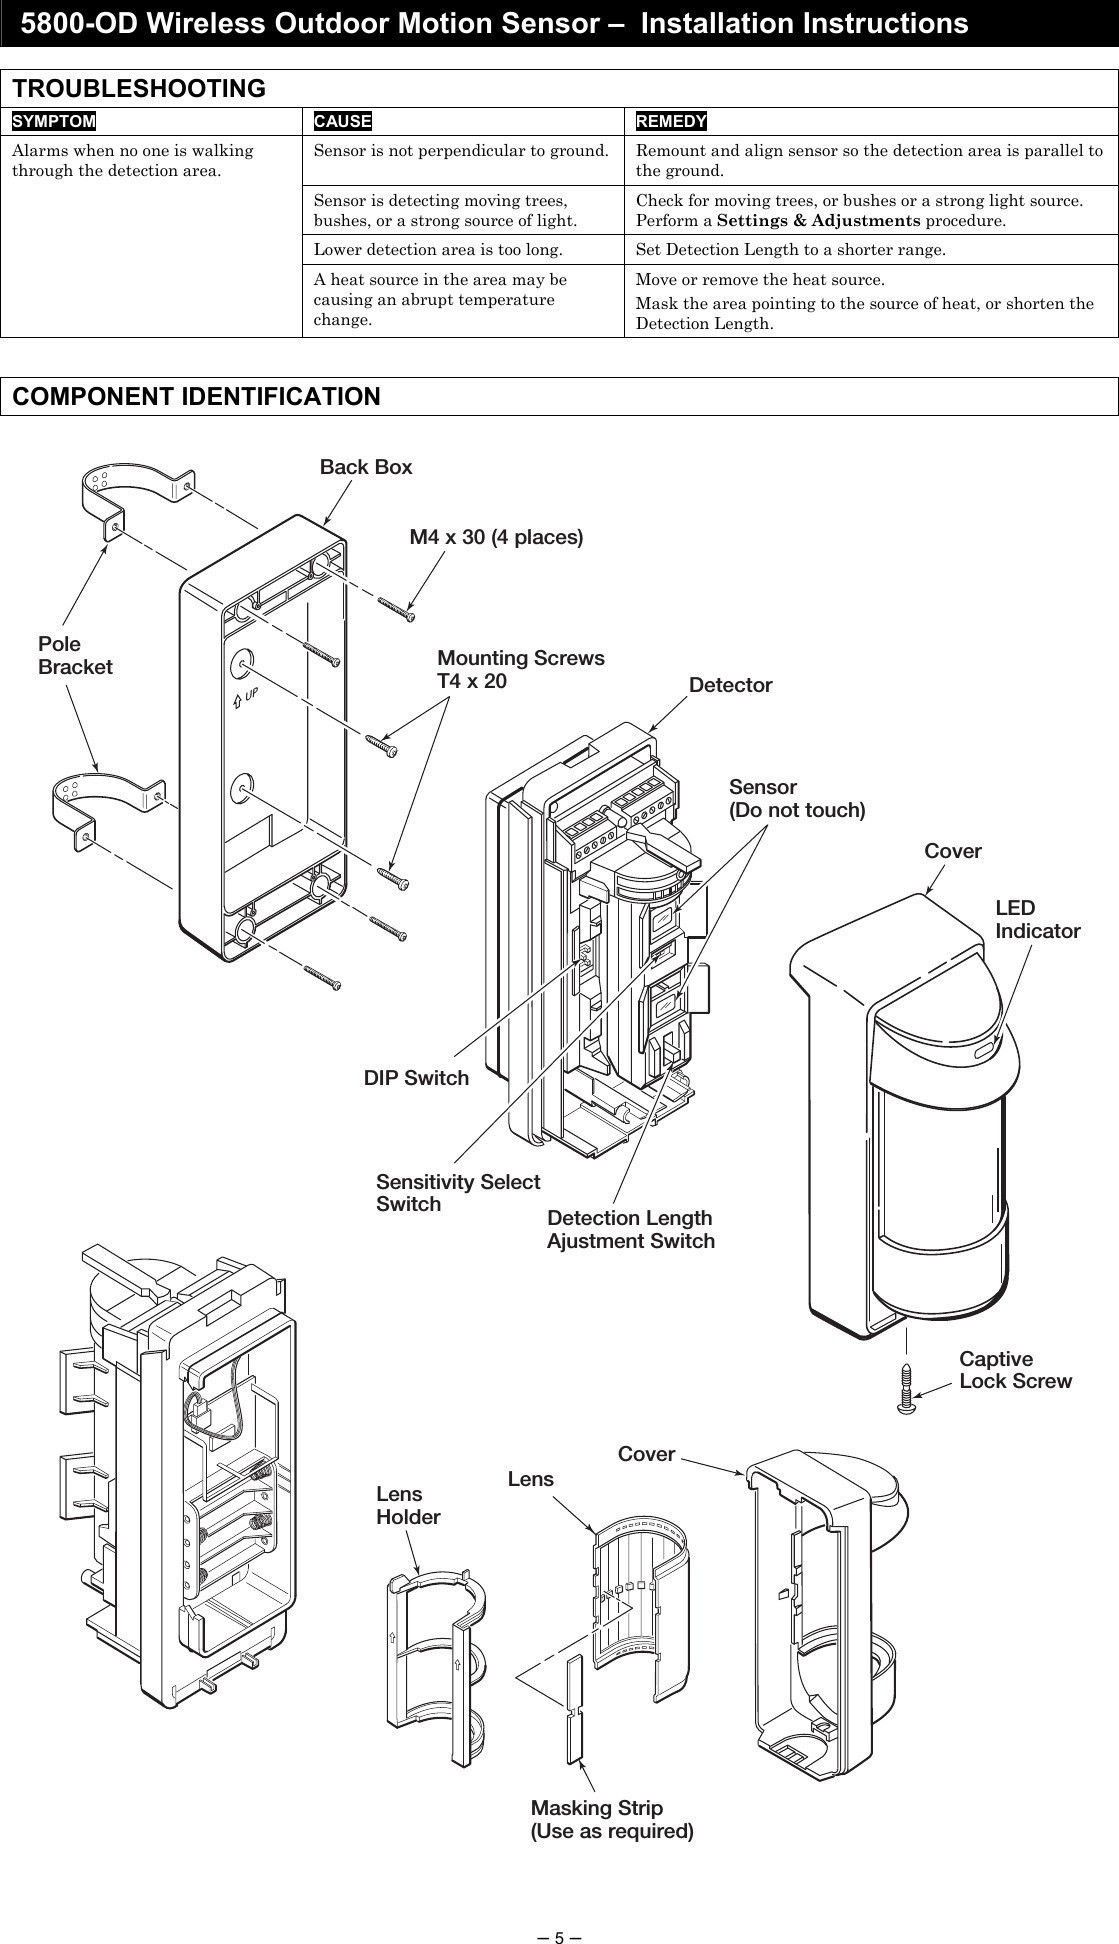 Wiring Diagram Outside Light With Sensor Awesome Wiring Diagram For Pir Security Light Inspirationa Wiring Diagram